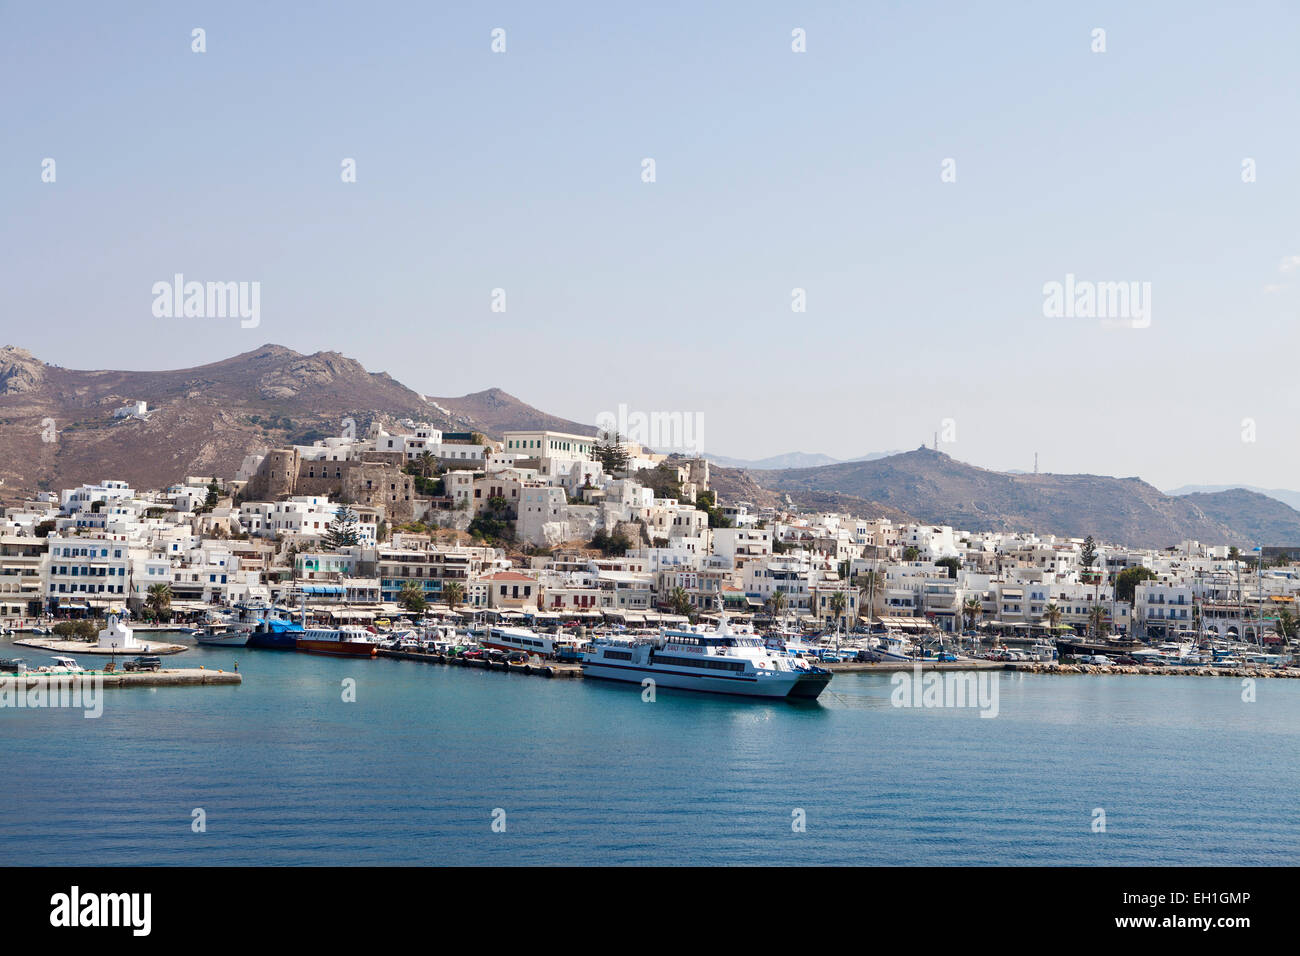 Naxos port,Town. View from a ferry as approaches the harbor - Stock Image